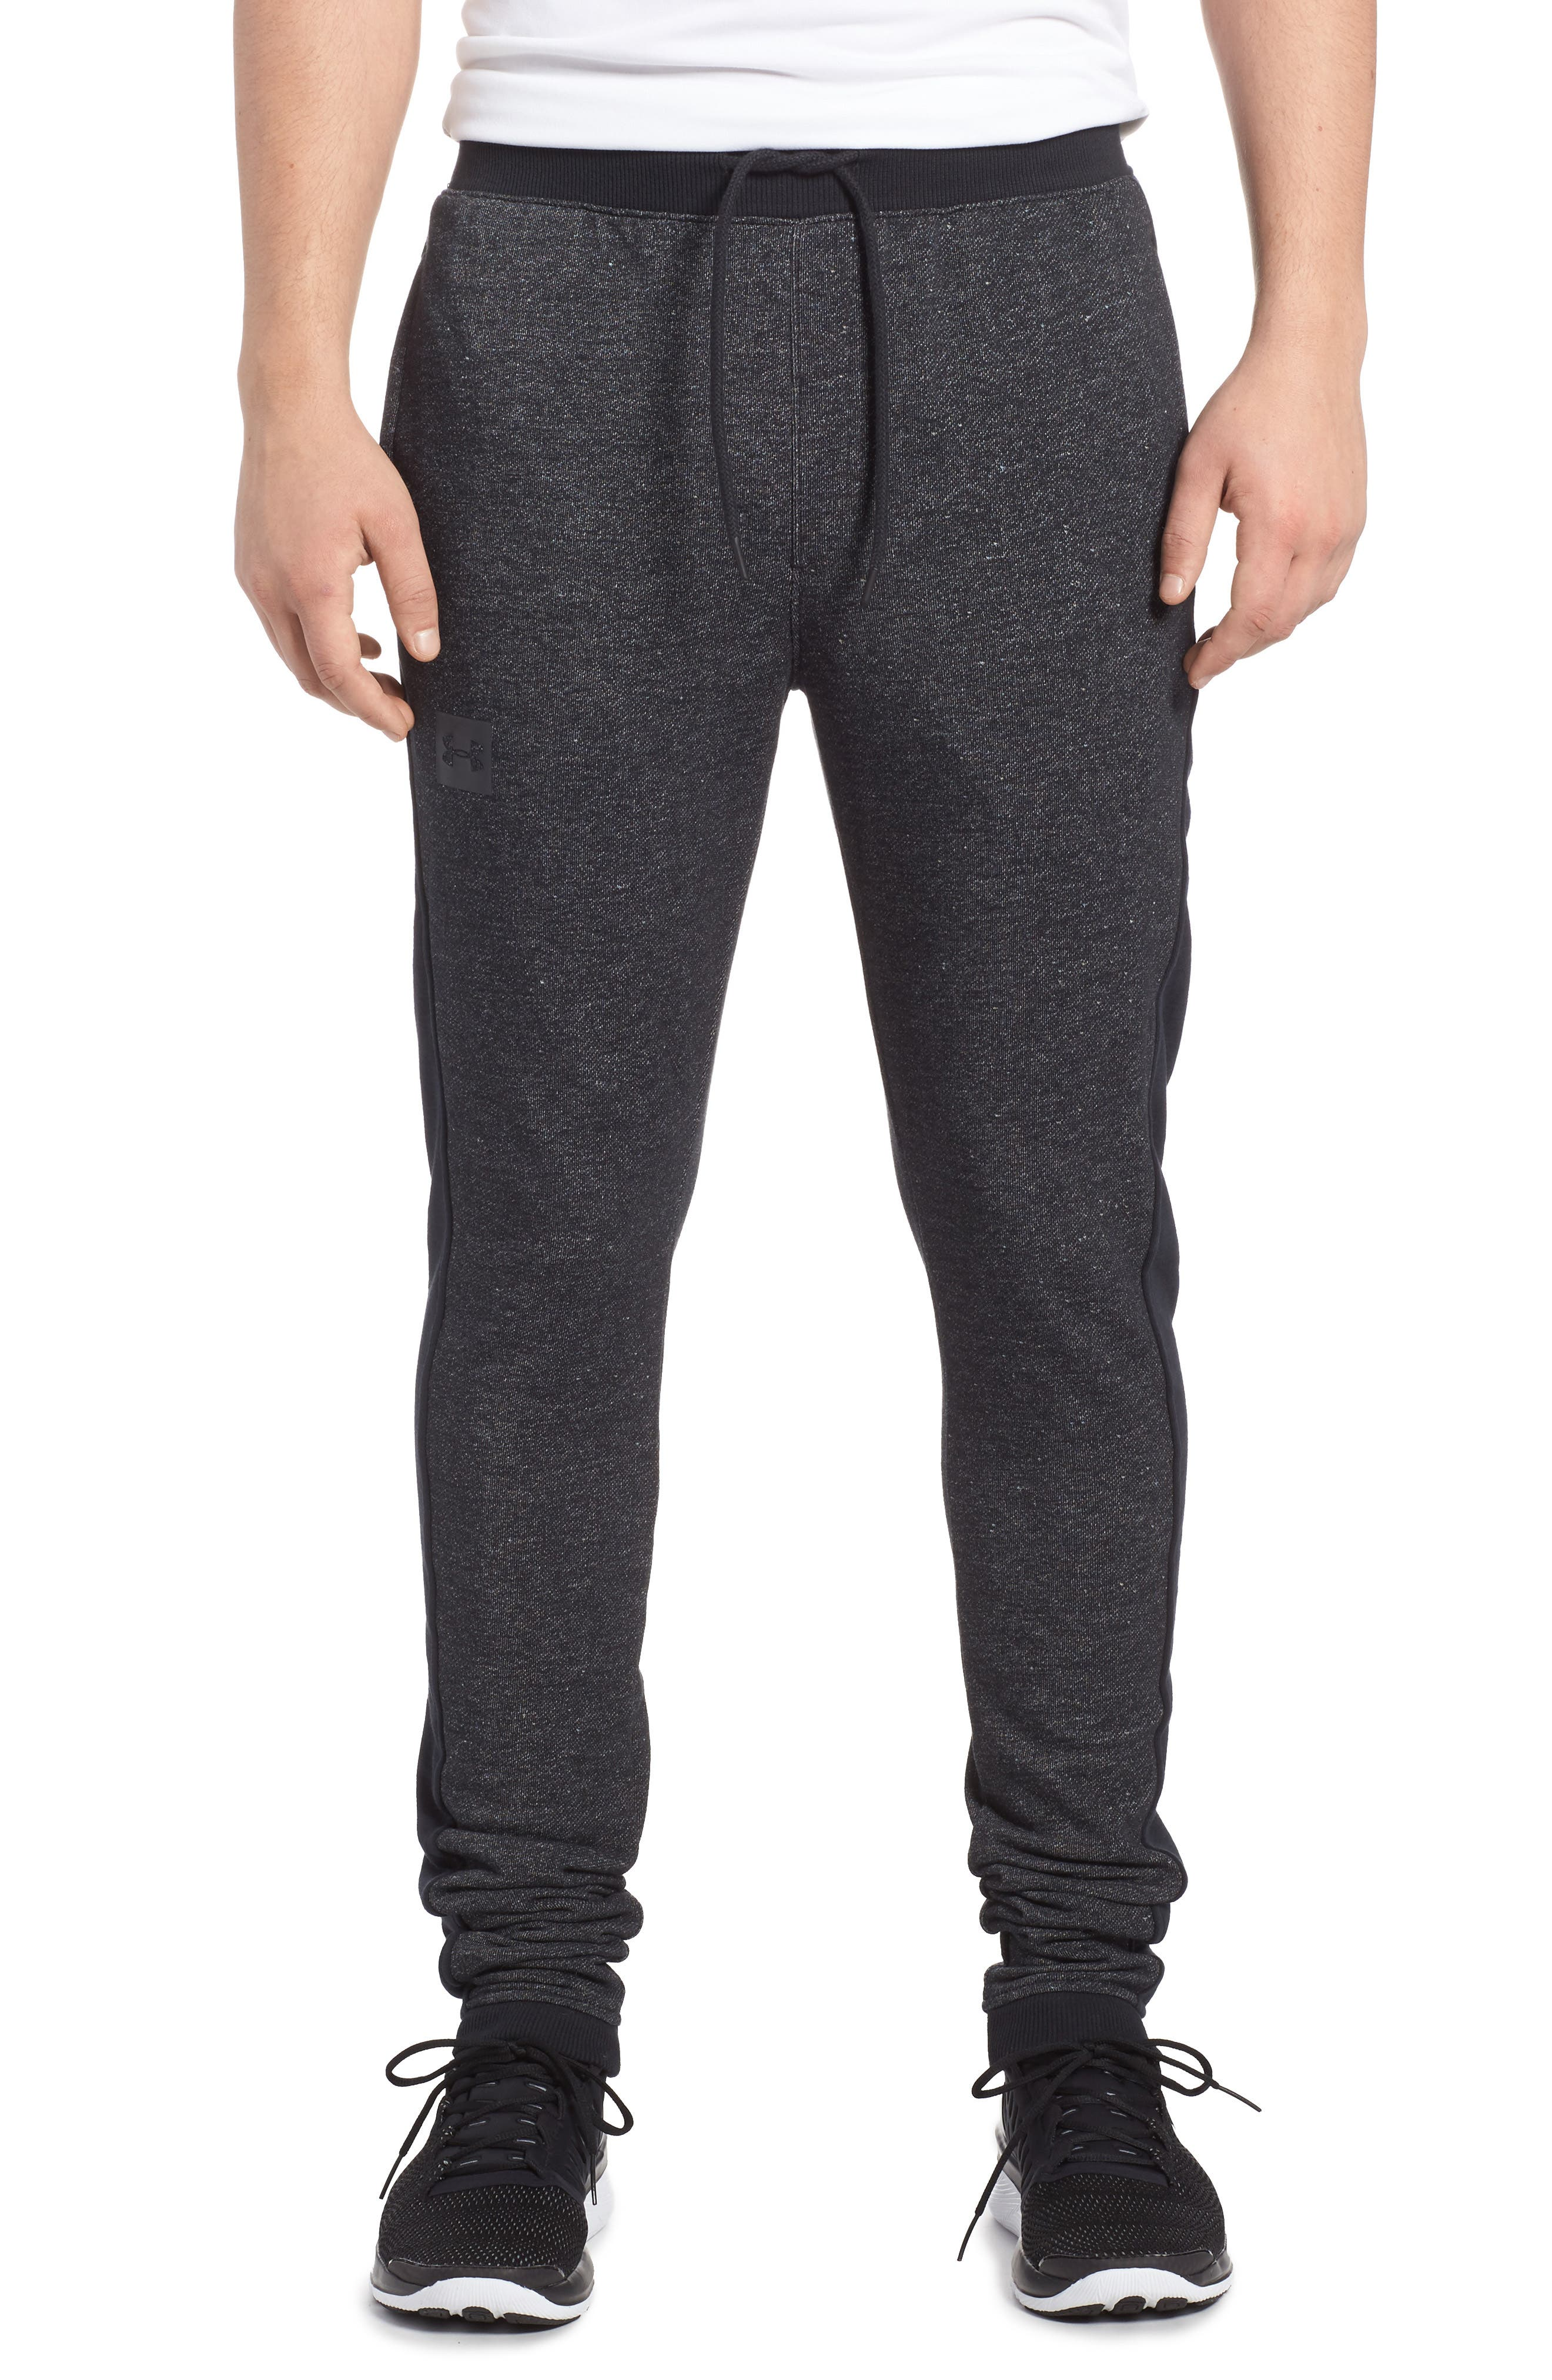 Alternate Image 1 Selected - Under Armour Sportstyle Fitted Fleece Leggings